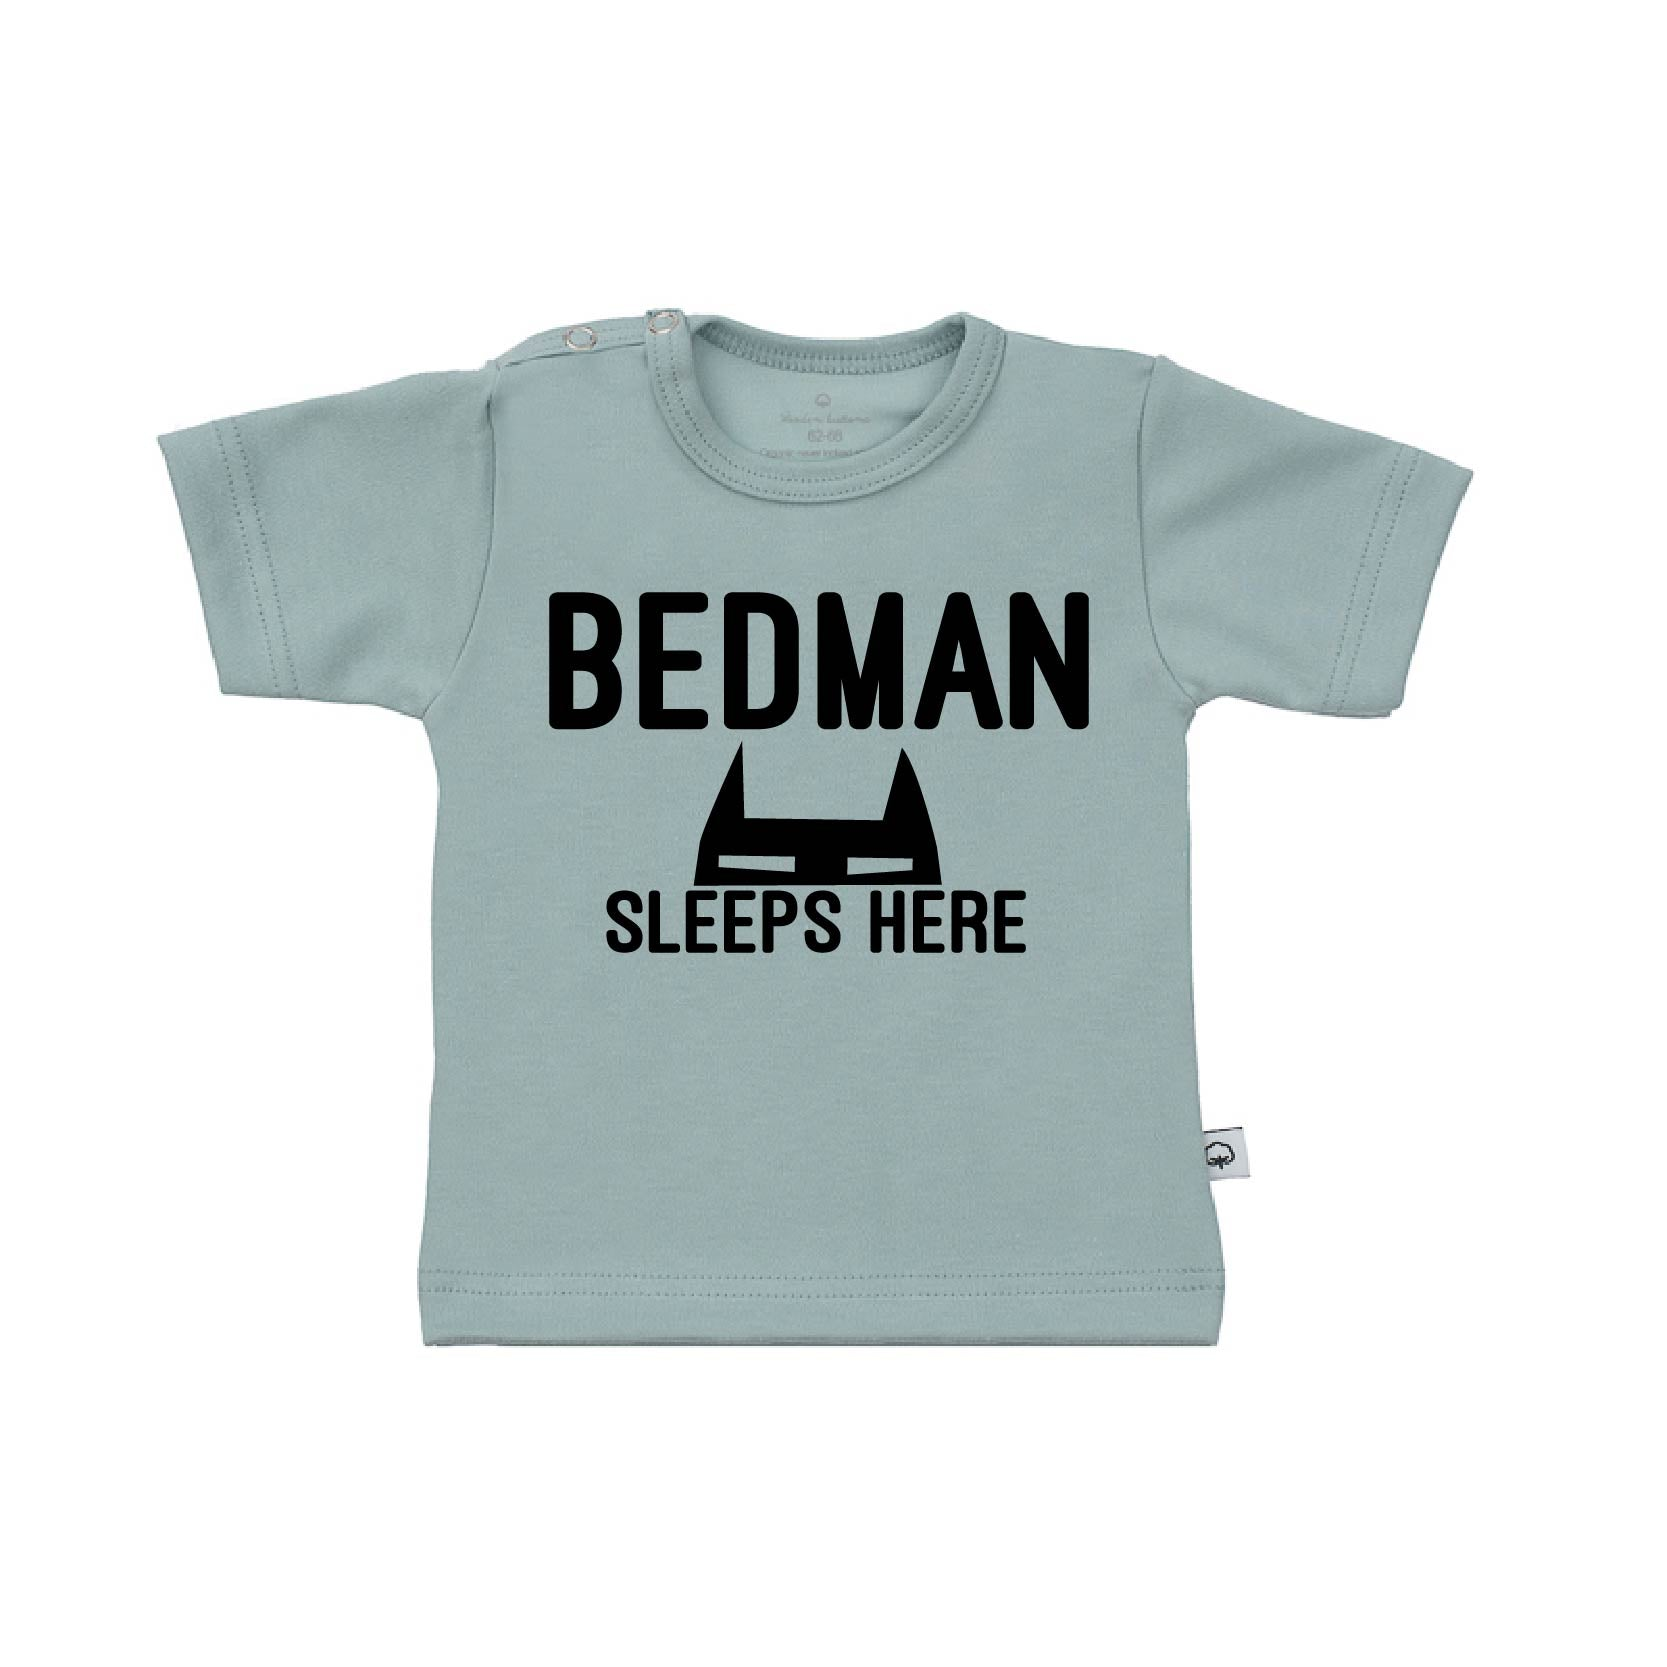 T-Shirt bedman sleeps here